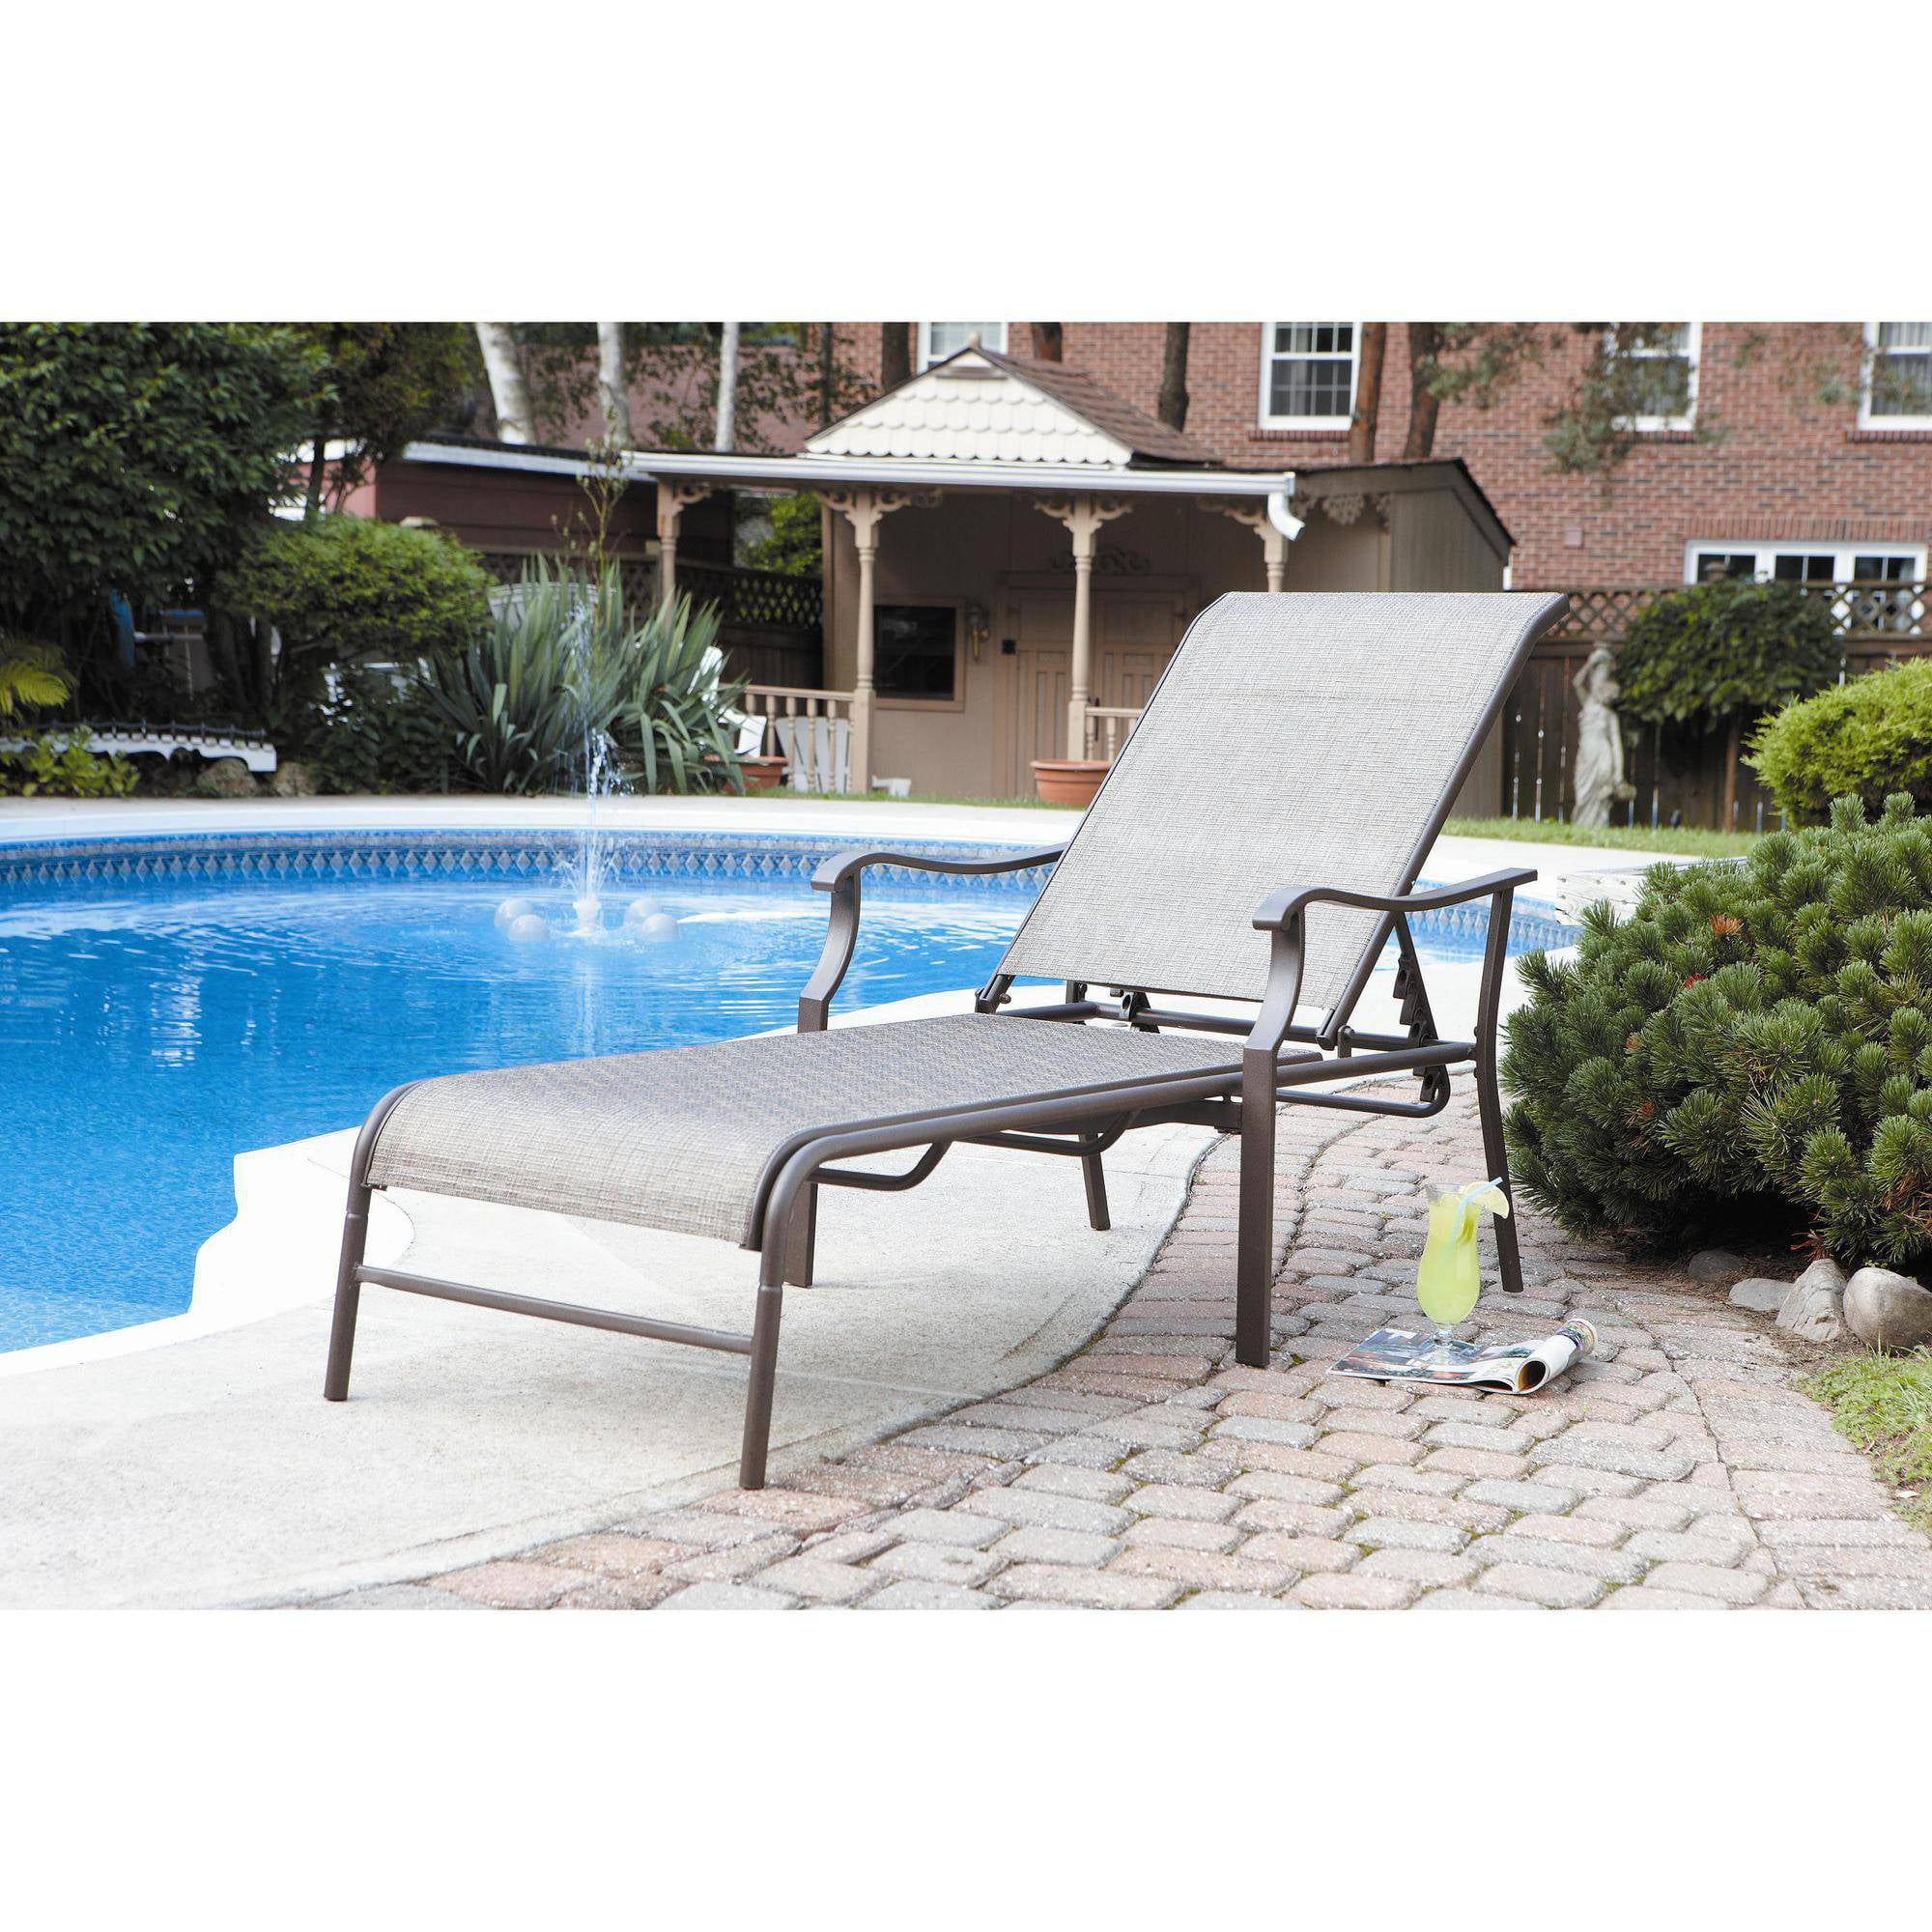 Outsunny Outdoor Patio Synthetic Rattan Wicker 3 Pc Chaise Lounge Chair Set  W/ Side Table   Walmart.com